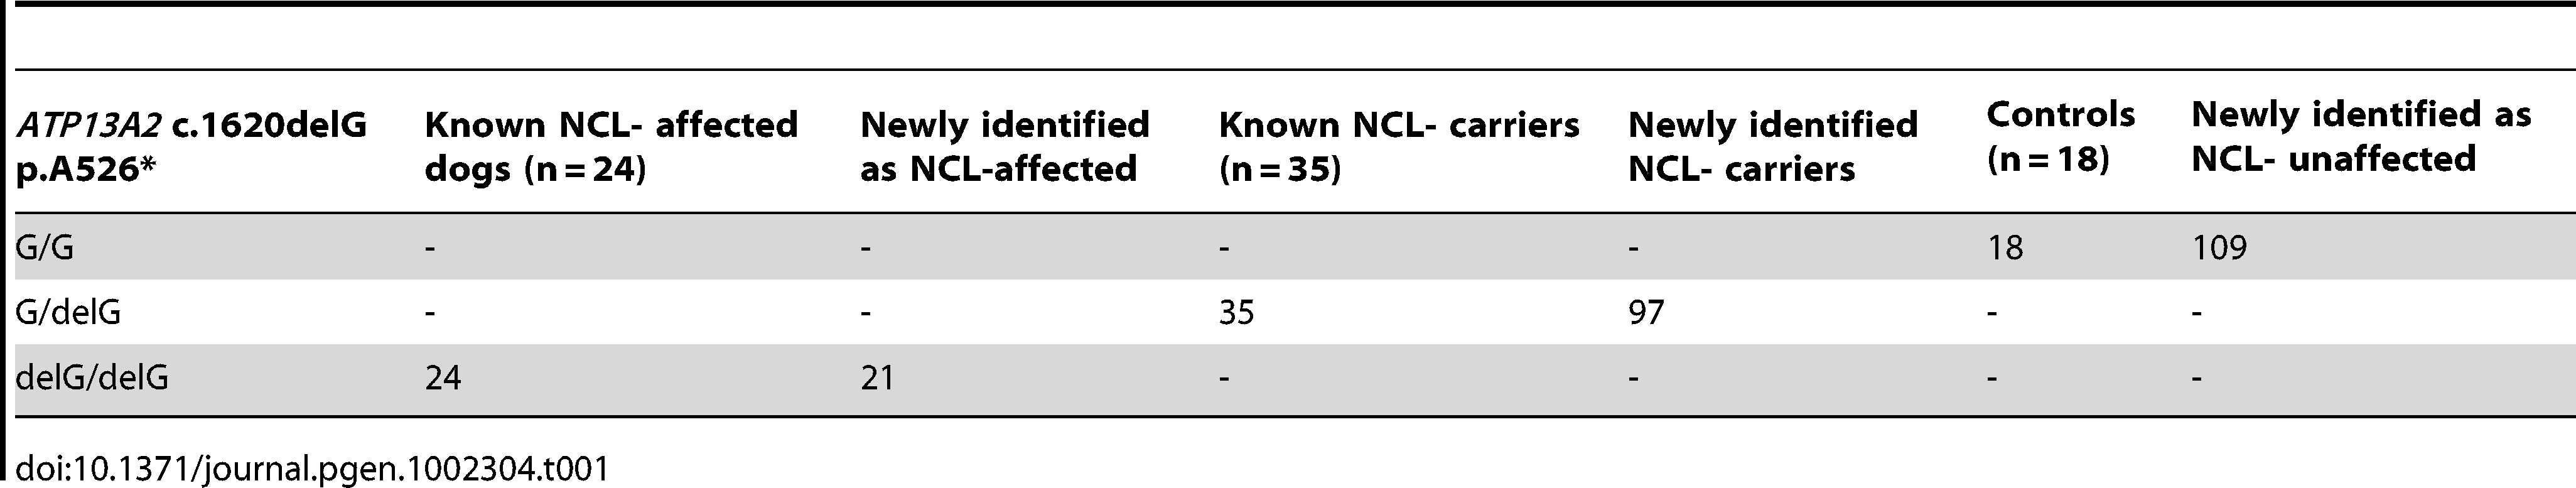 Summary of results for the <i>ATP13A2</i> c.1620delG mutation in Tibetan terriers.